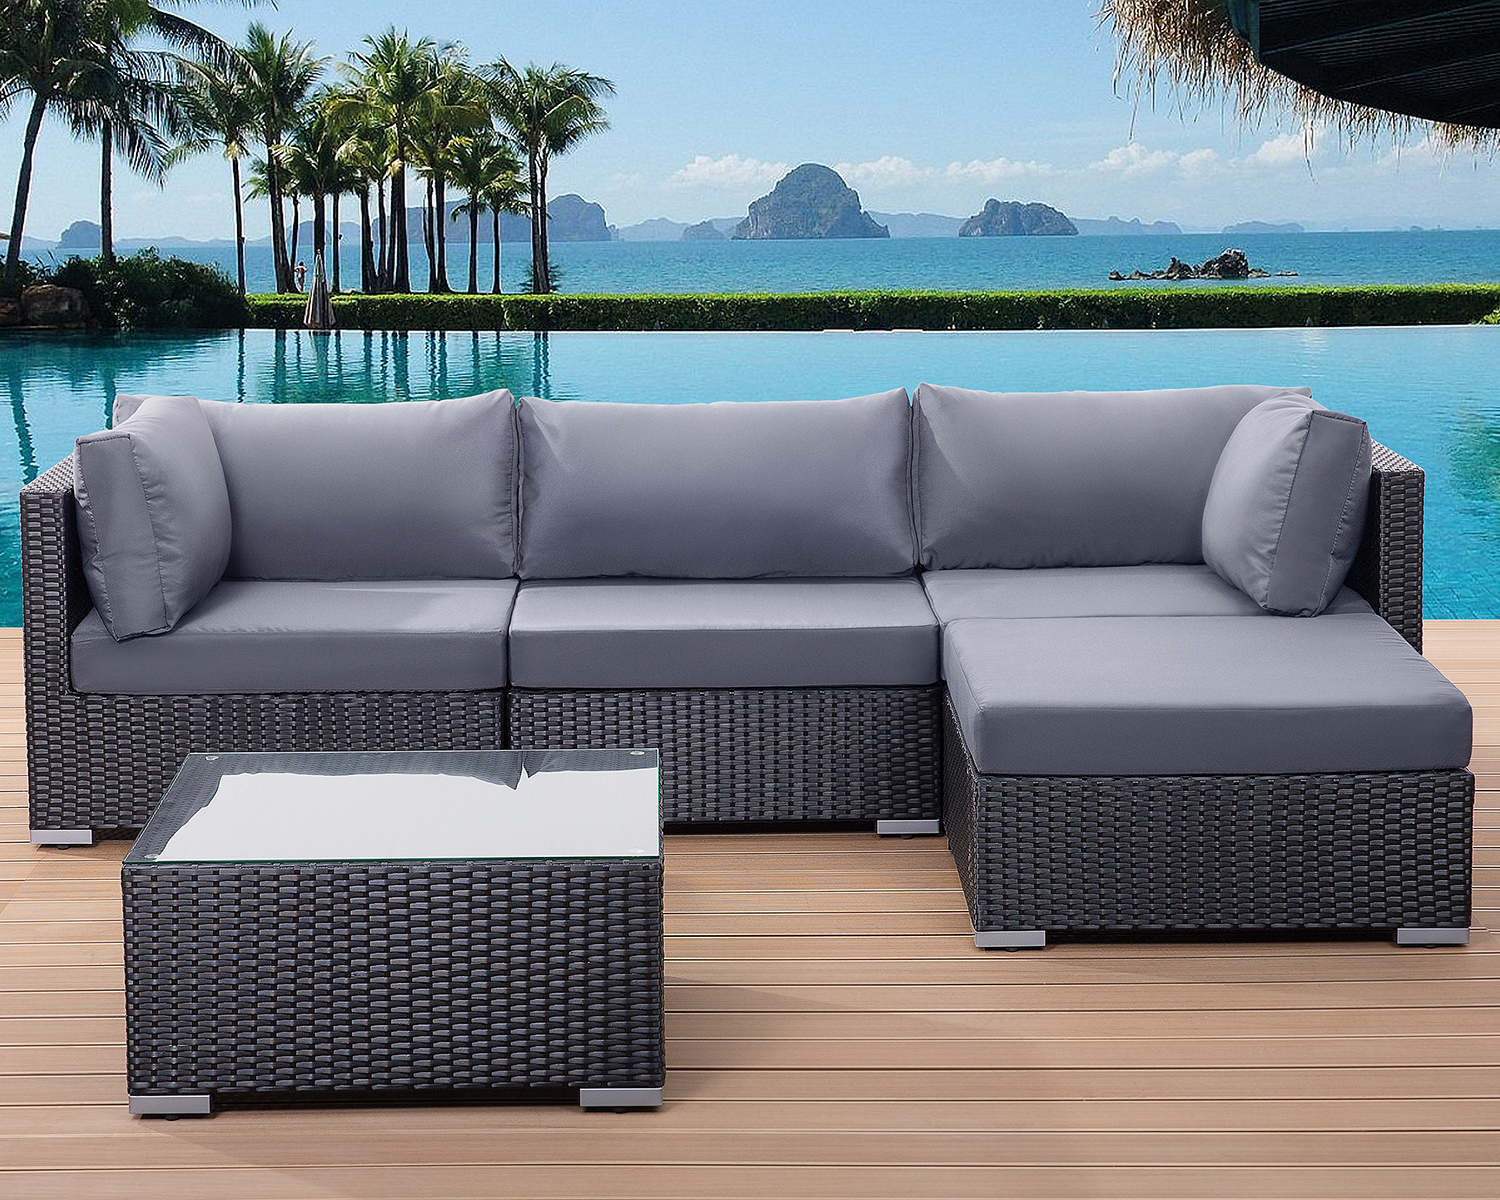 patio settee garden poly rattan lounge sofa set